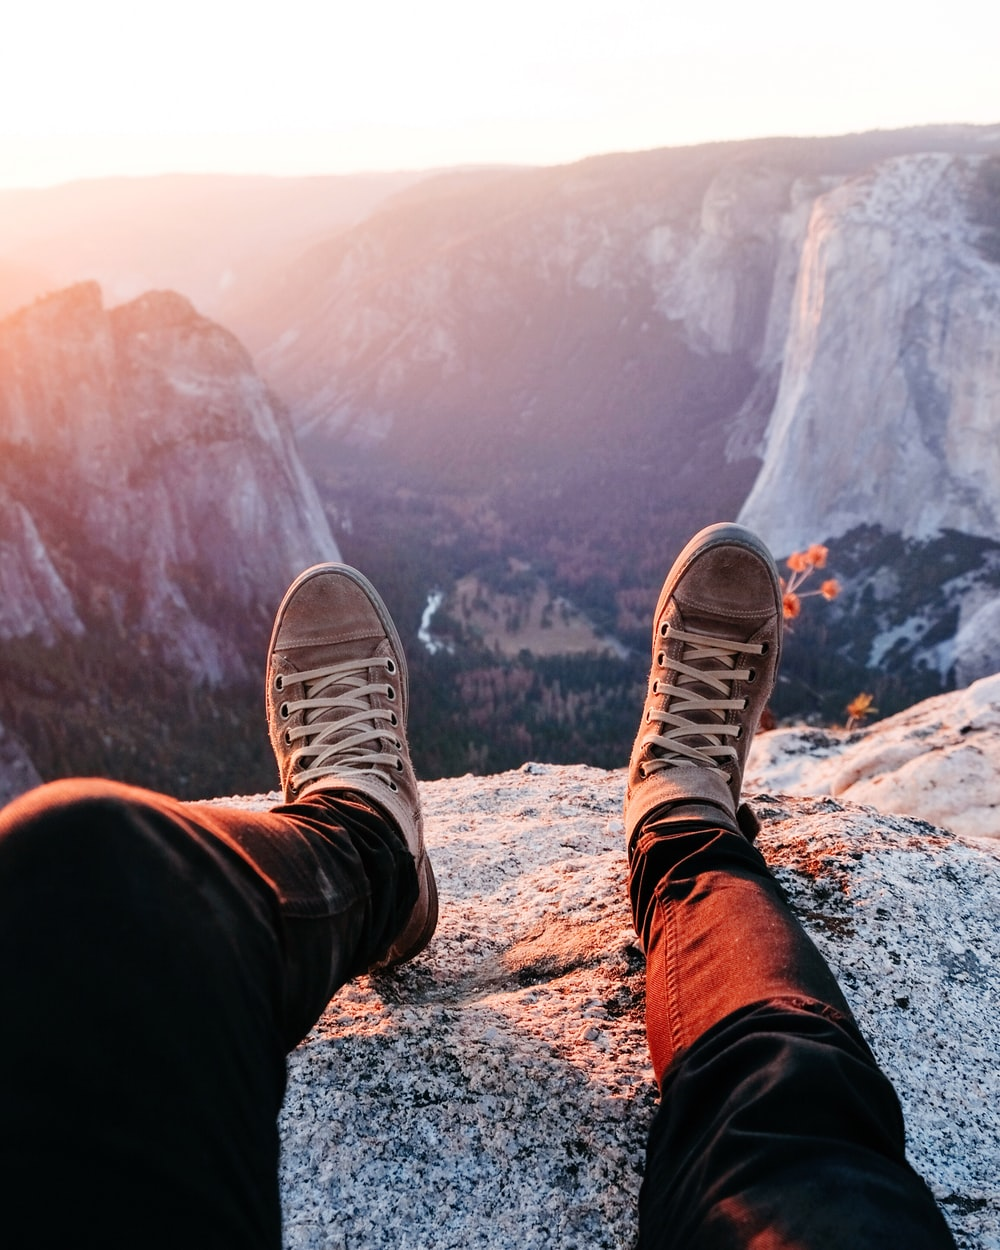 person wearing brown lace-up sneakers sitting on rocky mountain during daytime